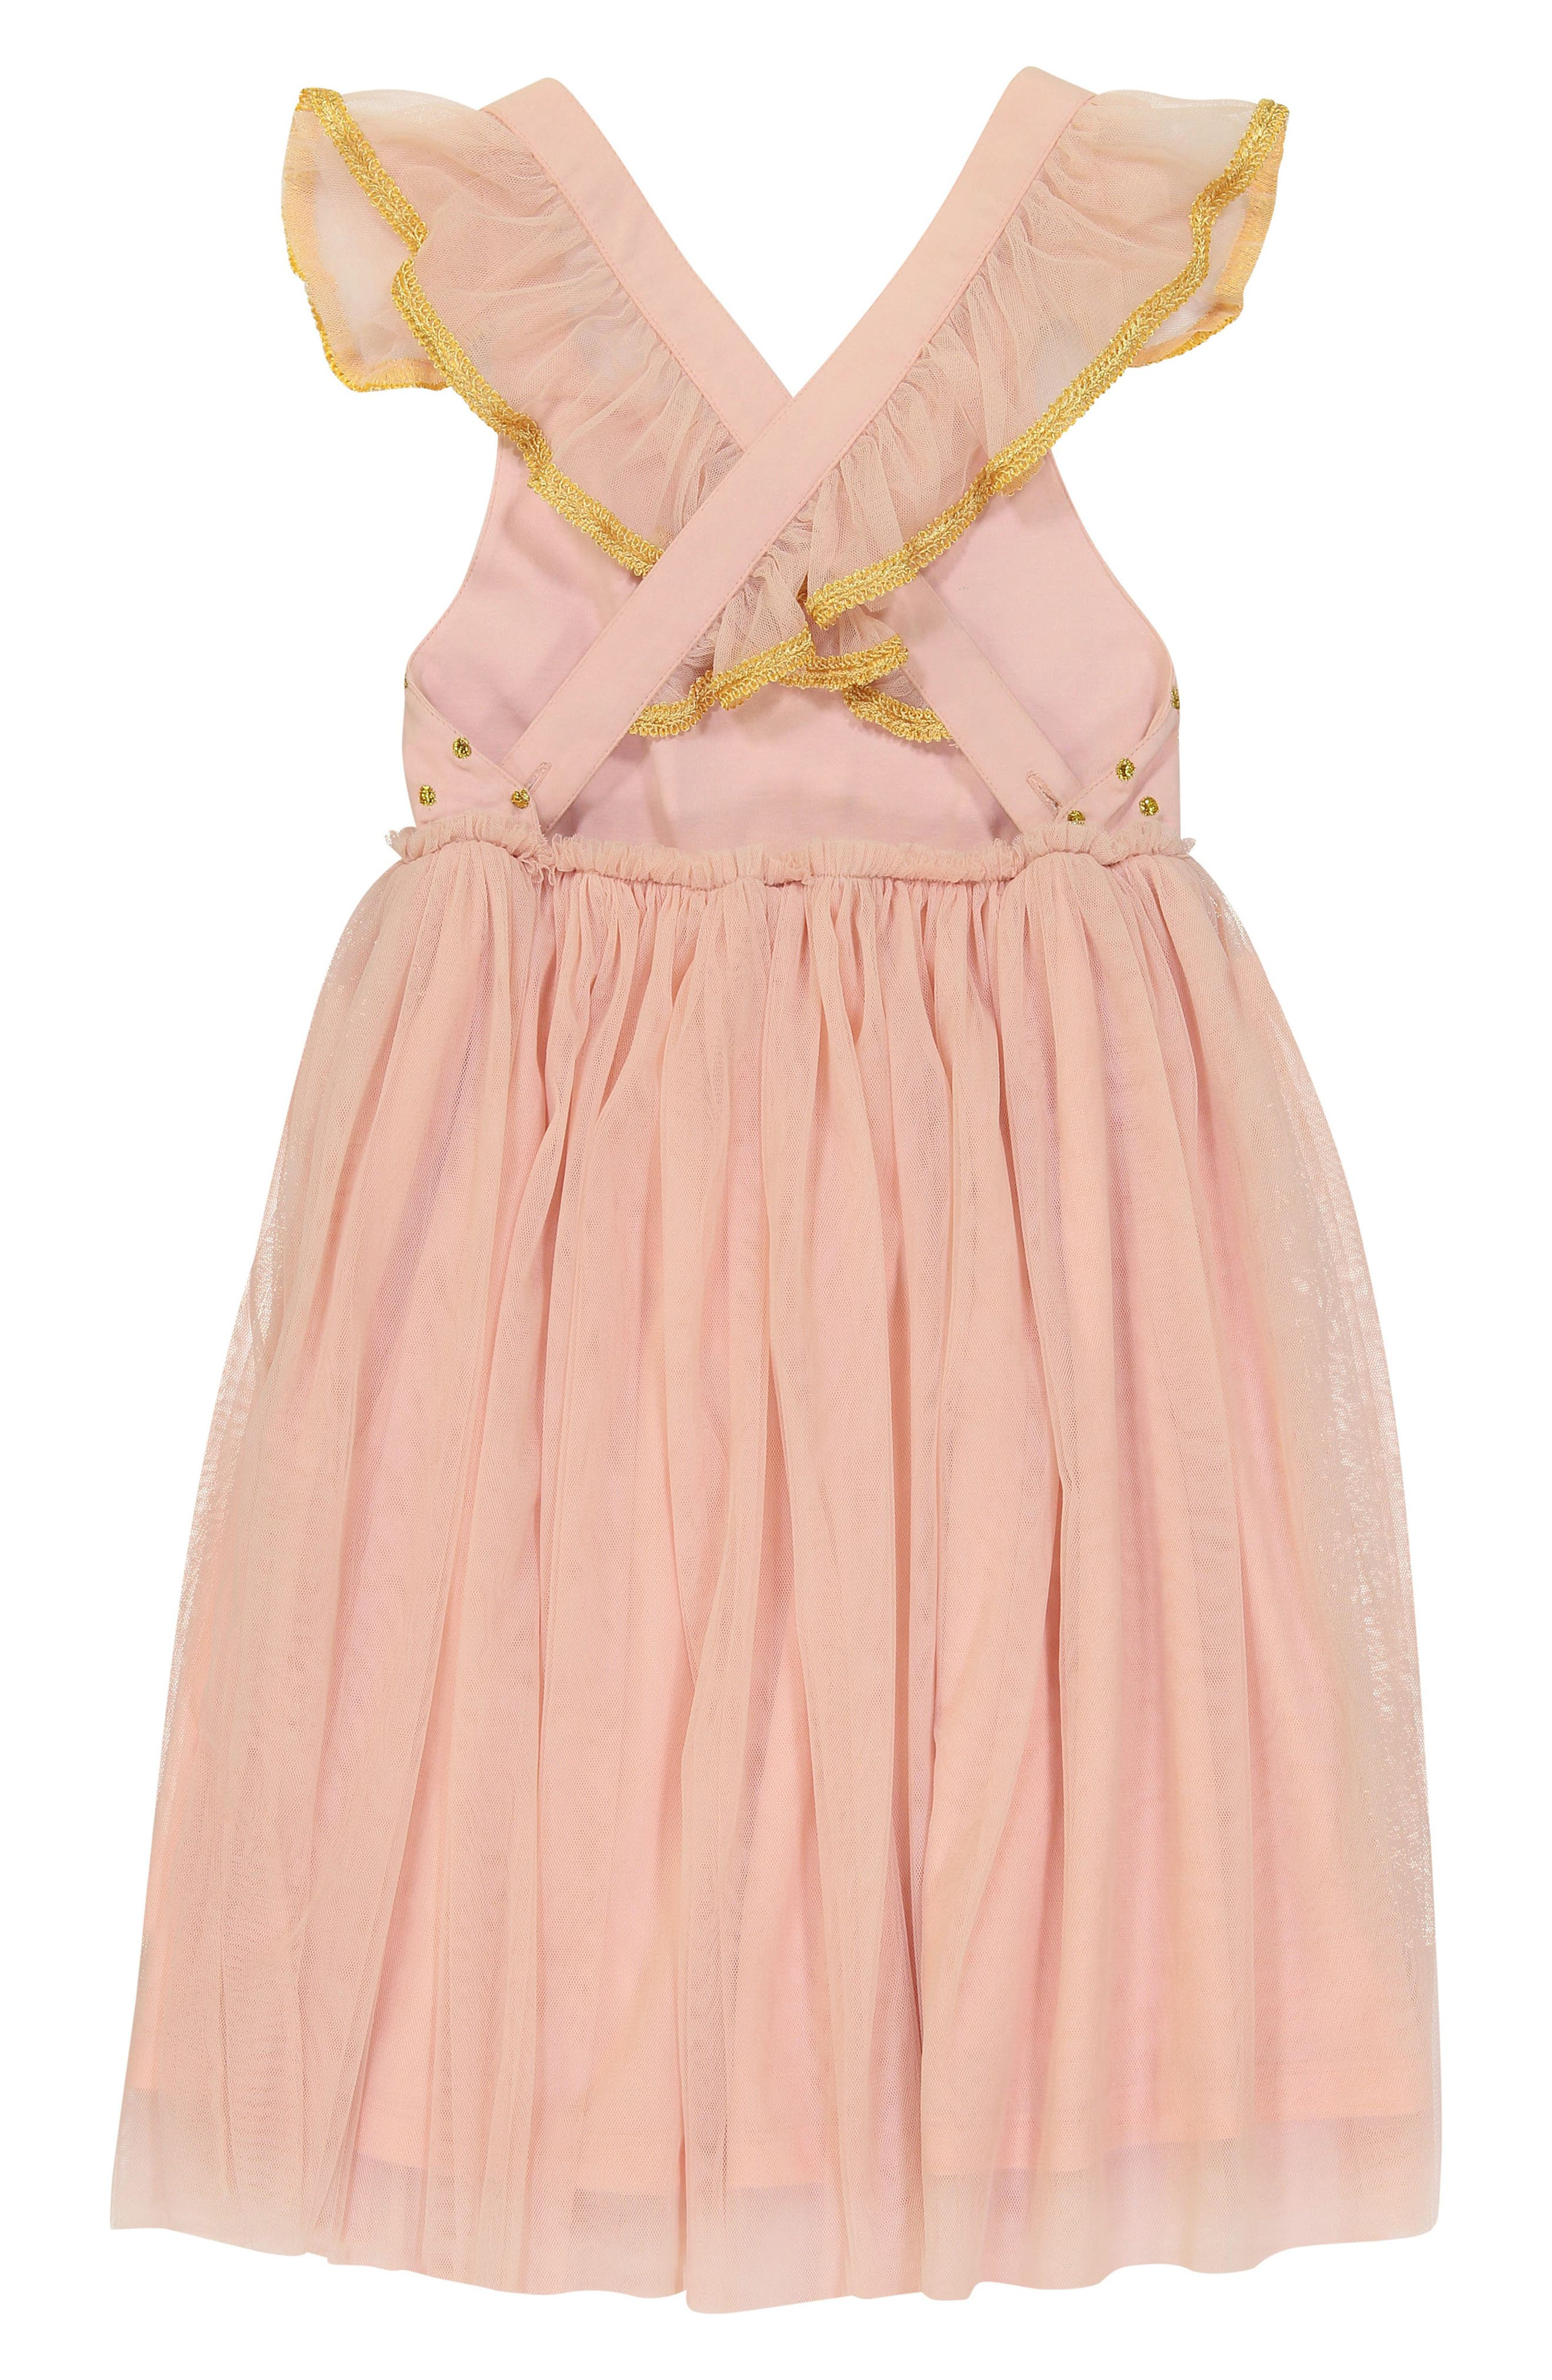 Diya Tulle Sundress,                             Alternate thumbnail 2, color,